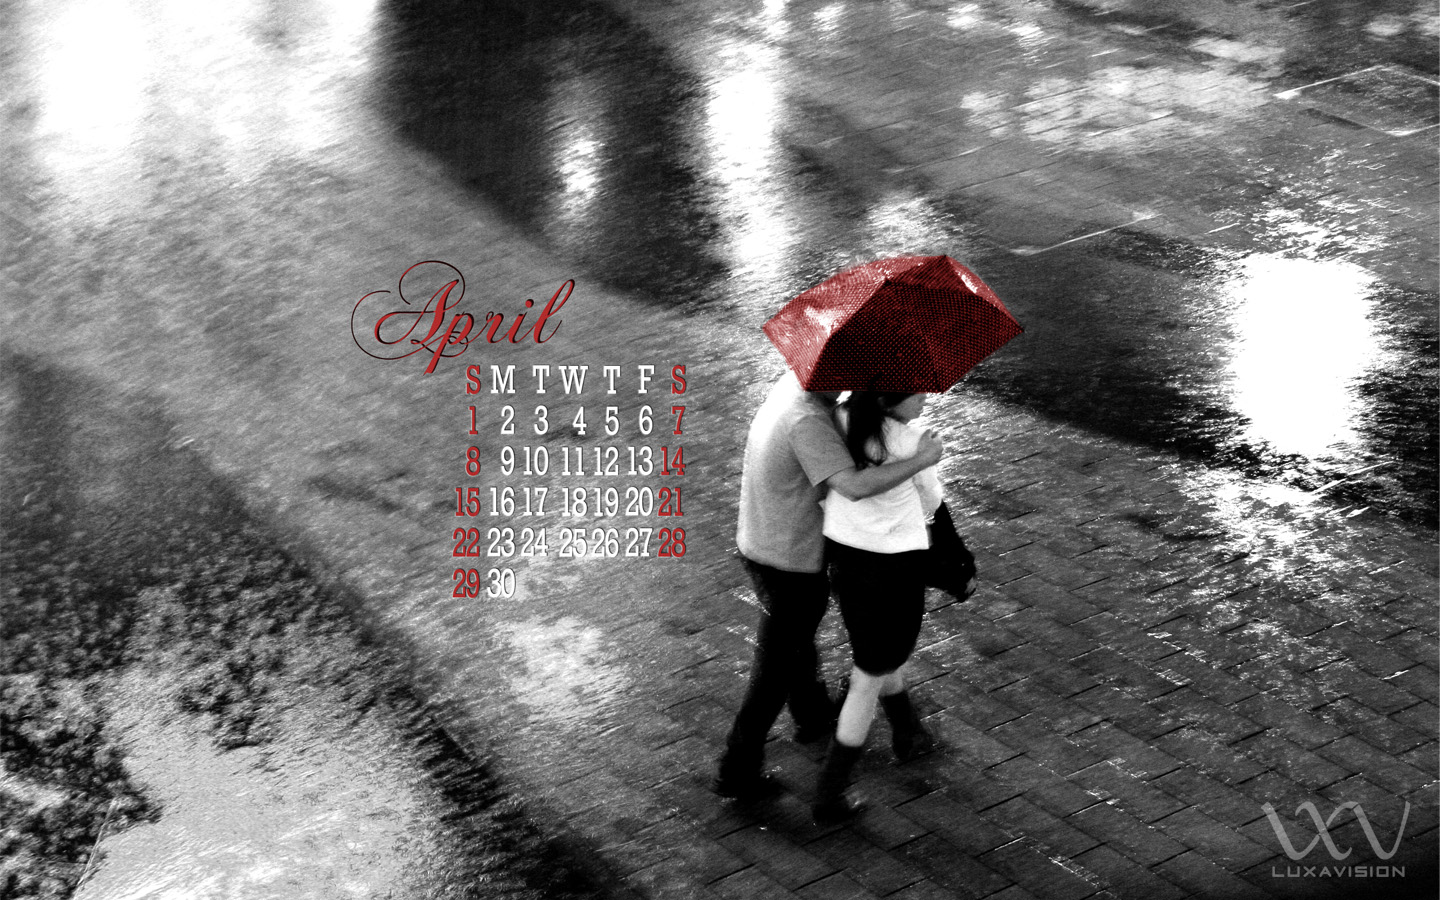 Desktop Calendar for April 2012 - Couple in the Rain with Umbrella 1440x900